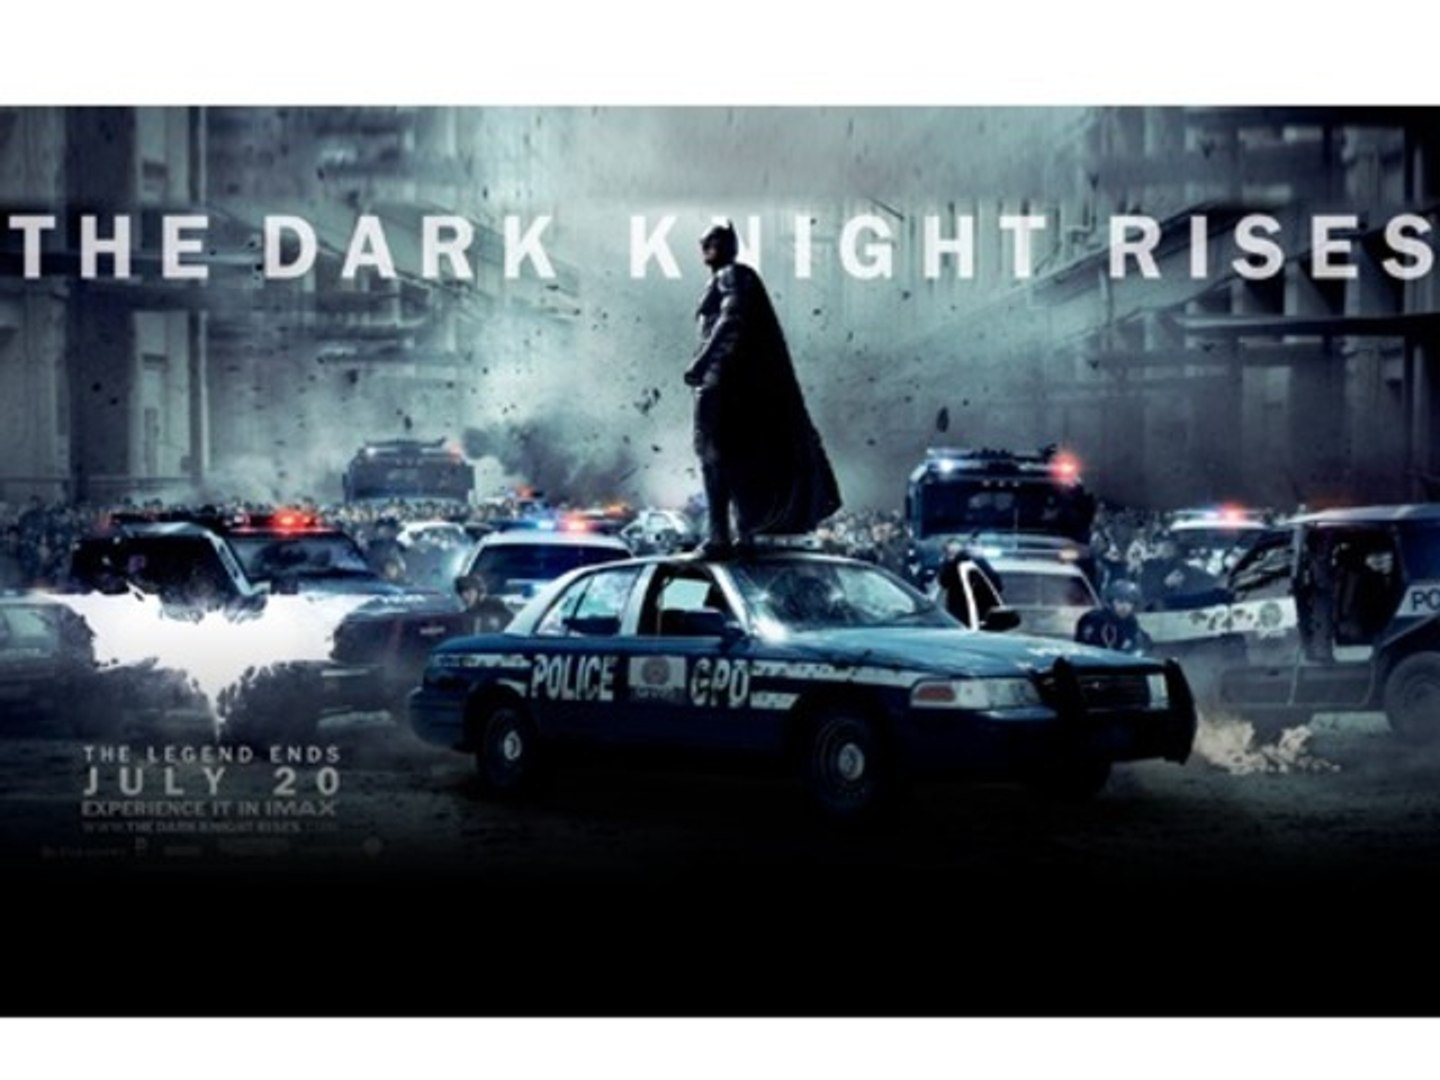 The Dark Knight Rises Movie Review - Christian Bale, Michael Caine and Tom Hardy